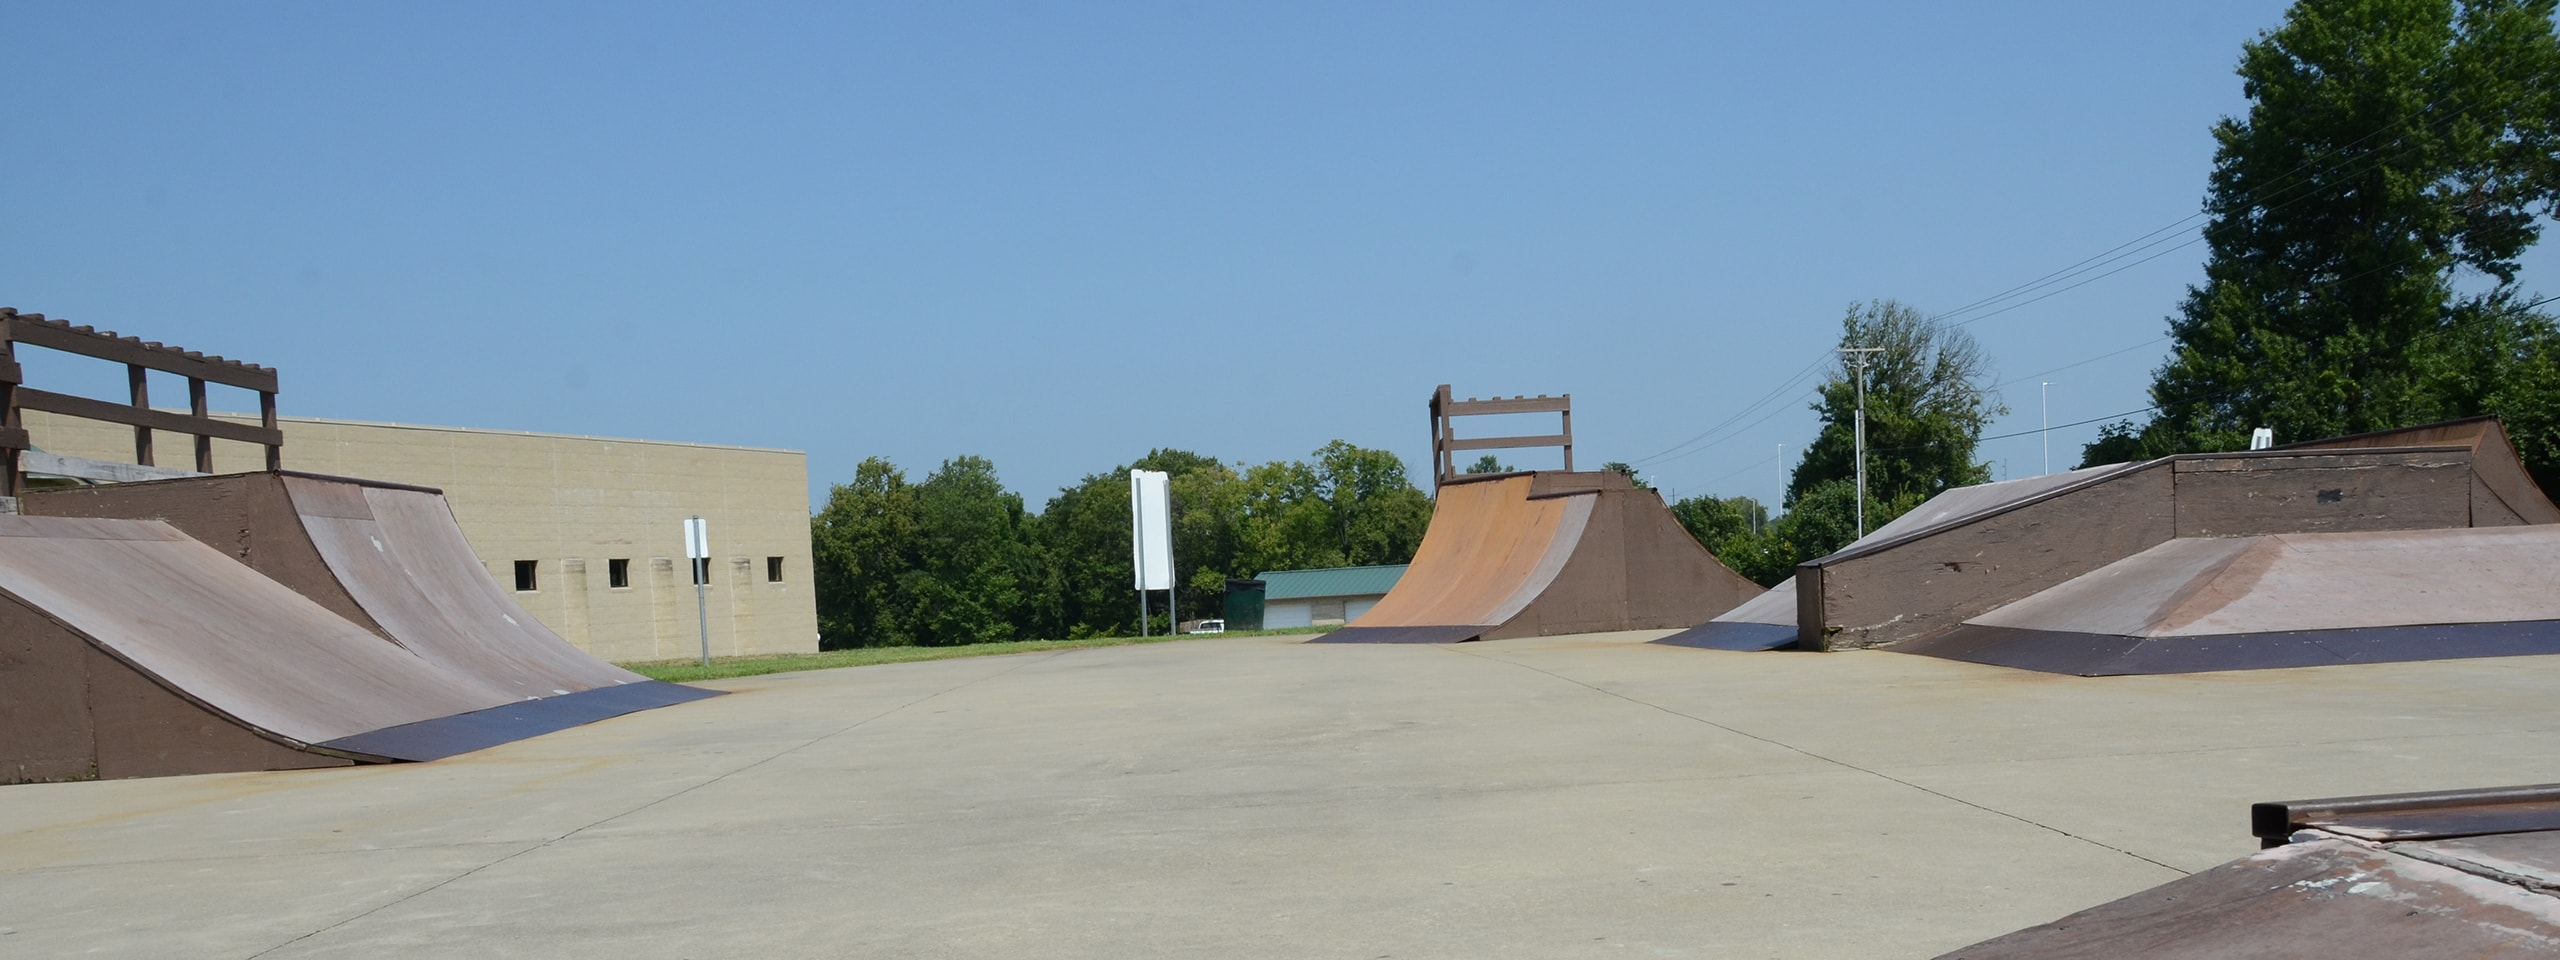 Skate Park At Pavilion Georgetown - Scott County Parks and Recreation